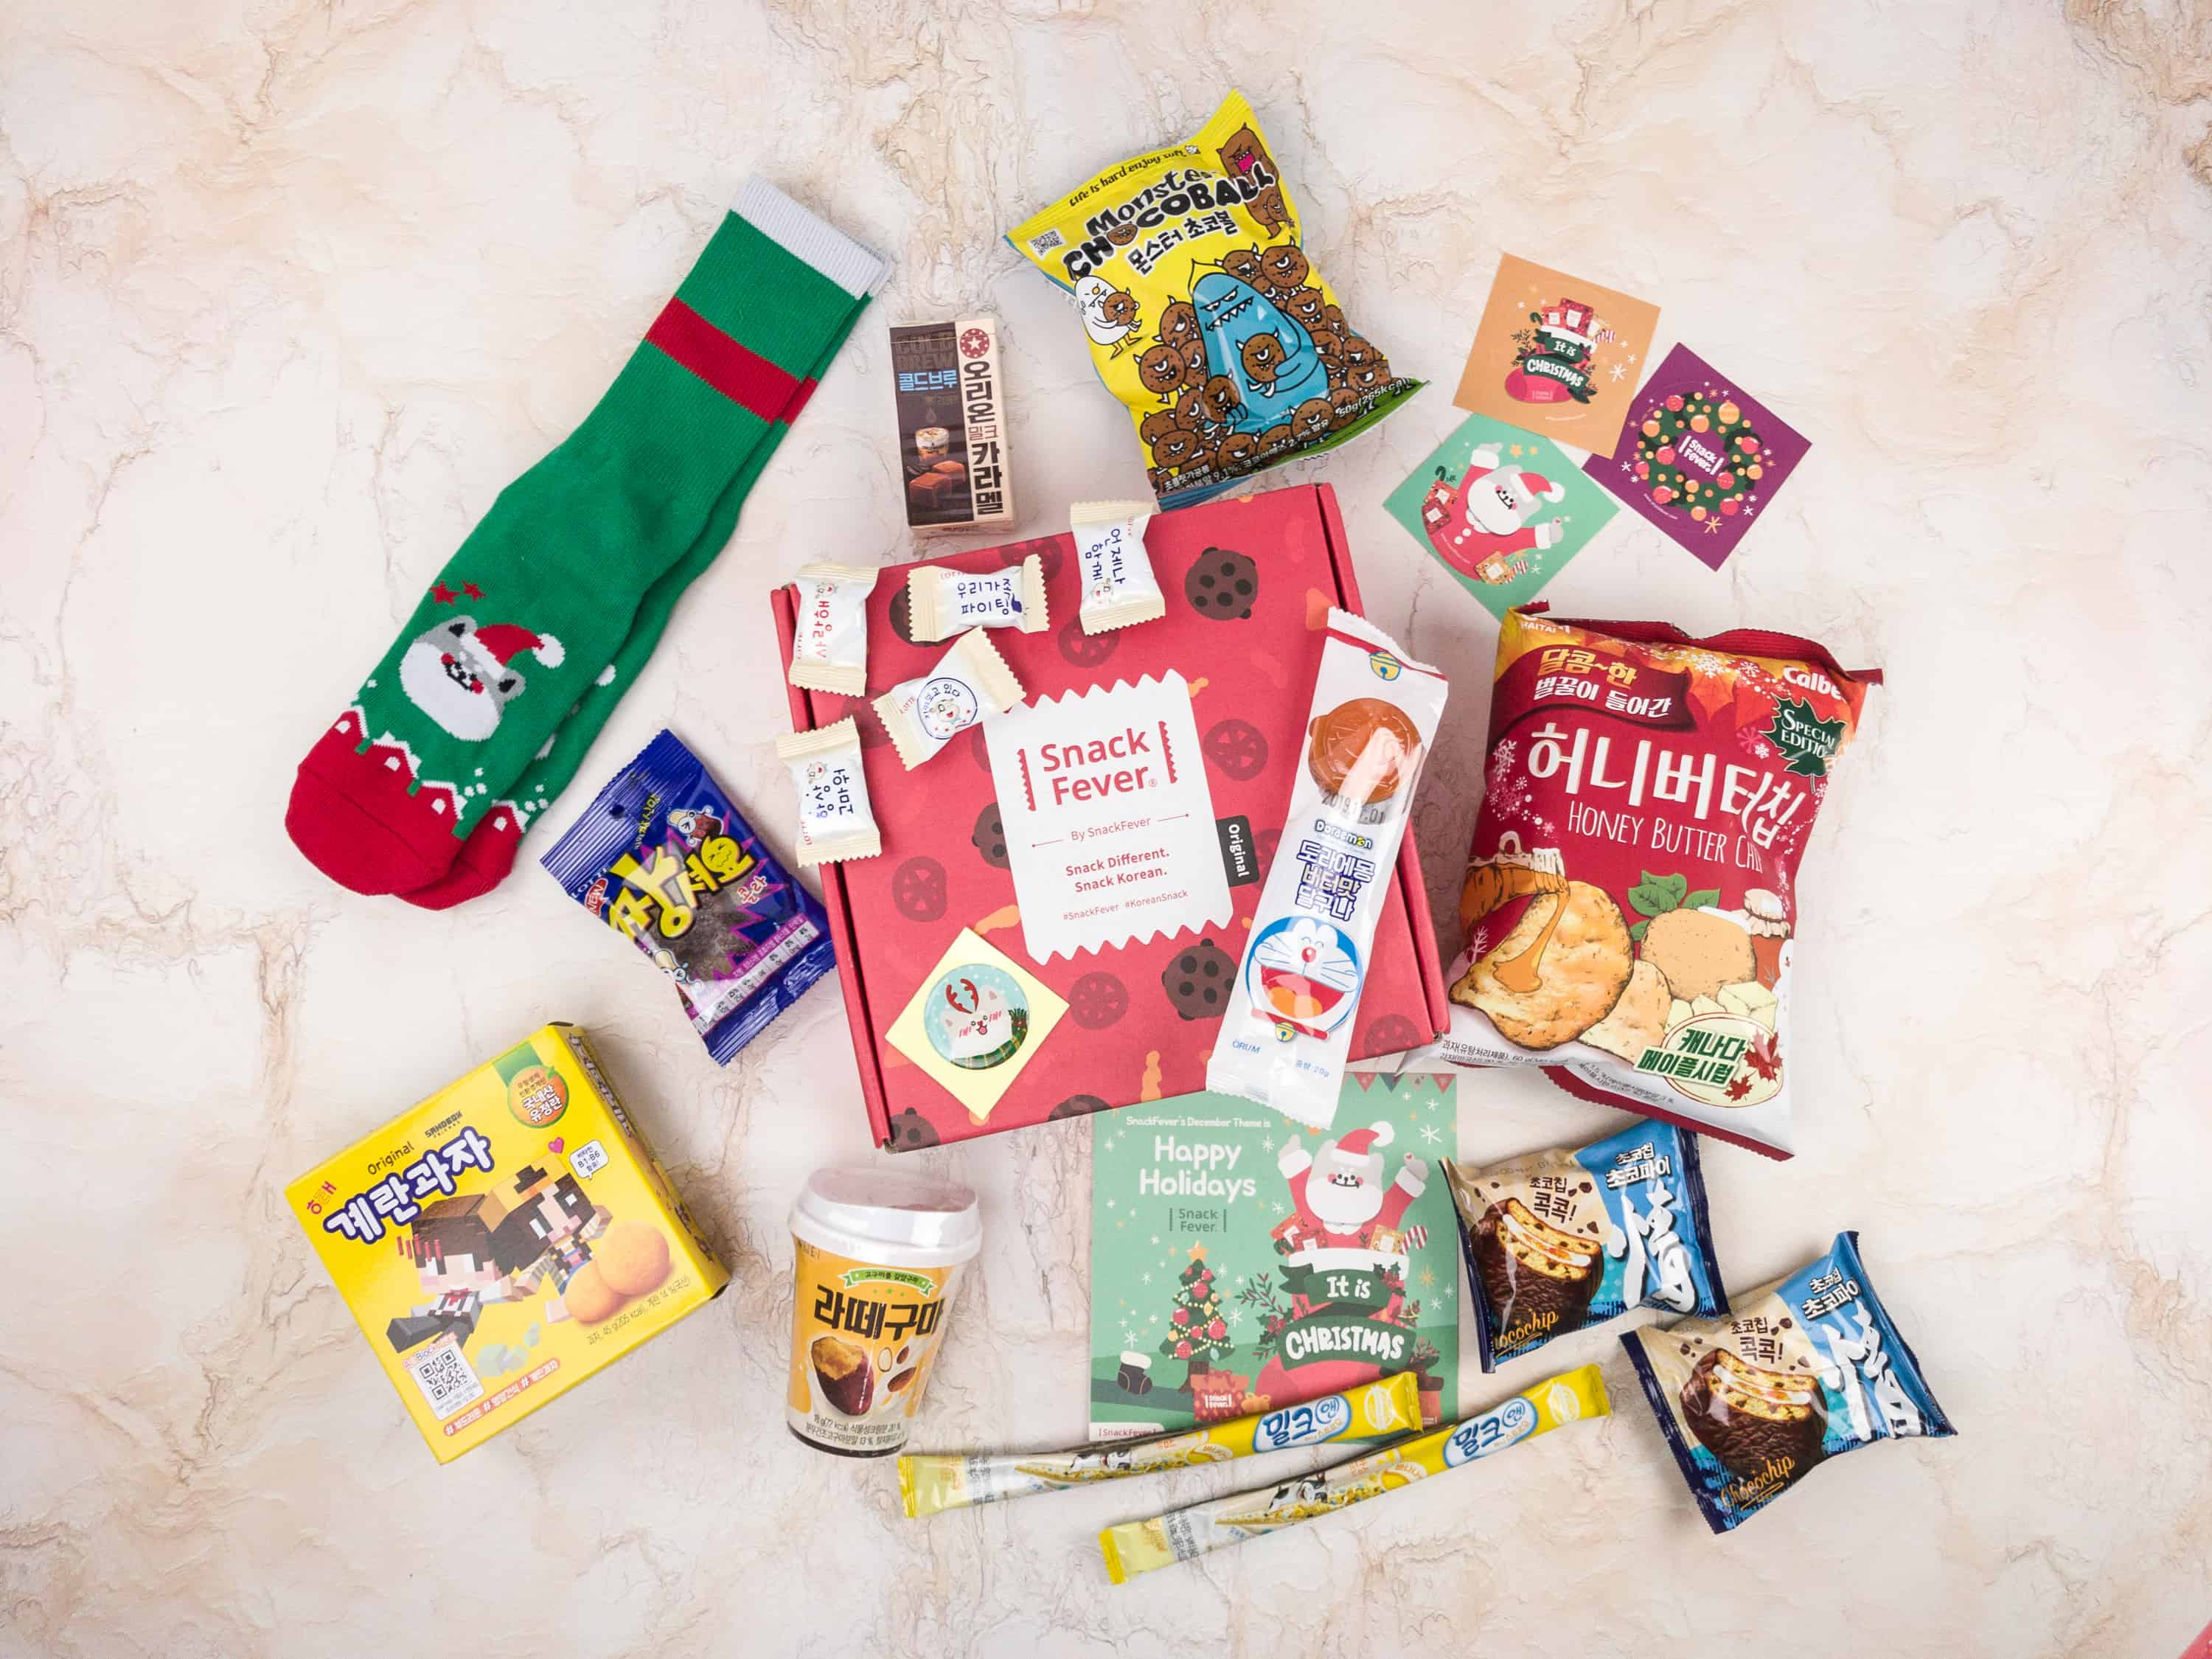 December 2017 Snack Fever Subscription Box Review + Coupon – Original Box